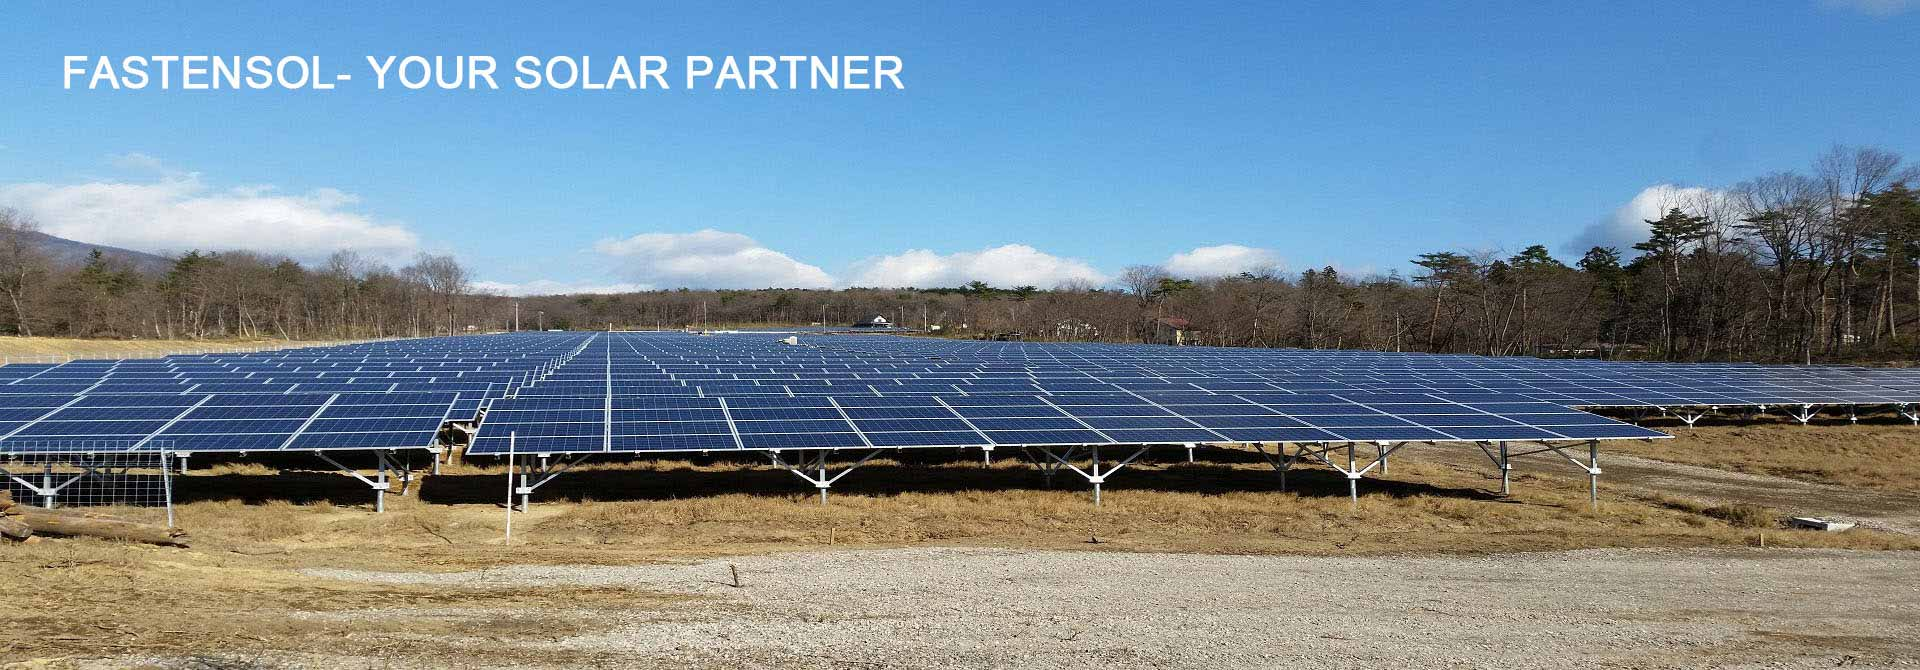 Solar mounting system manufacturer- Fastensolar